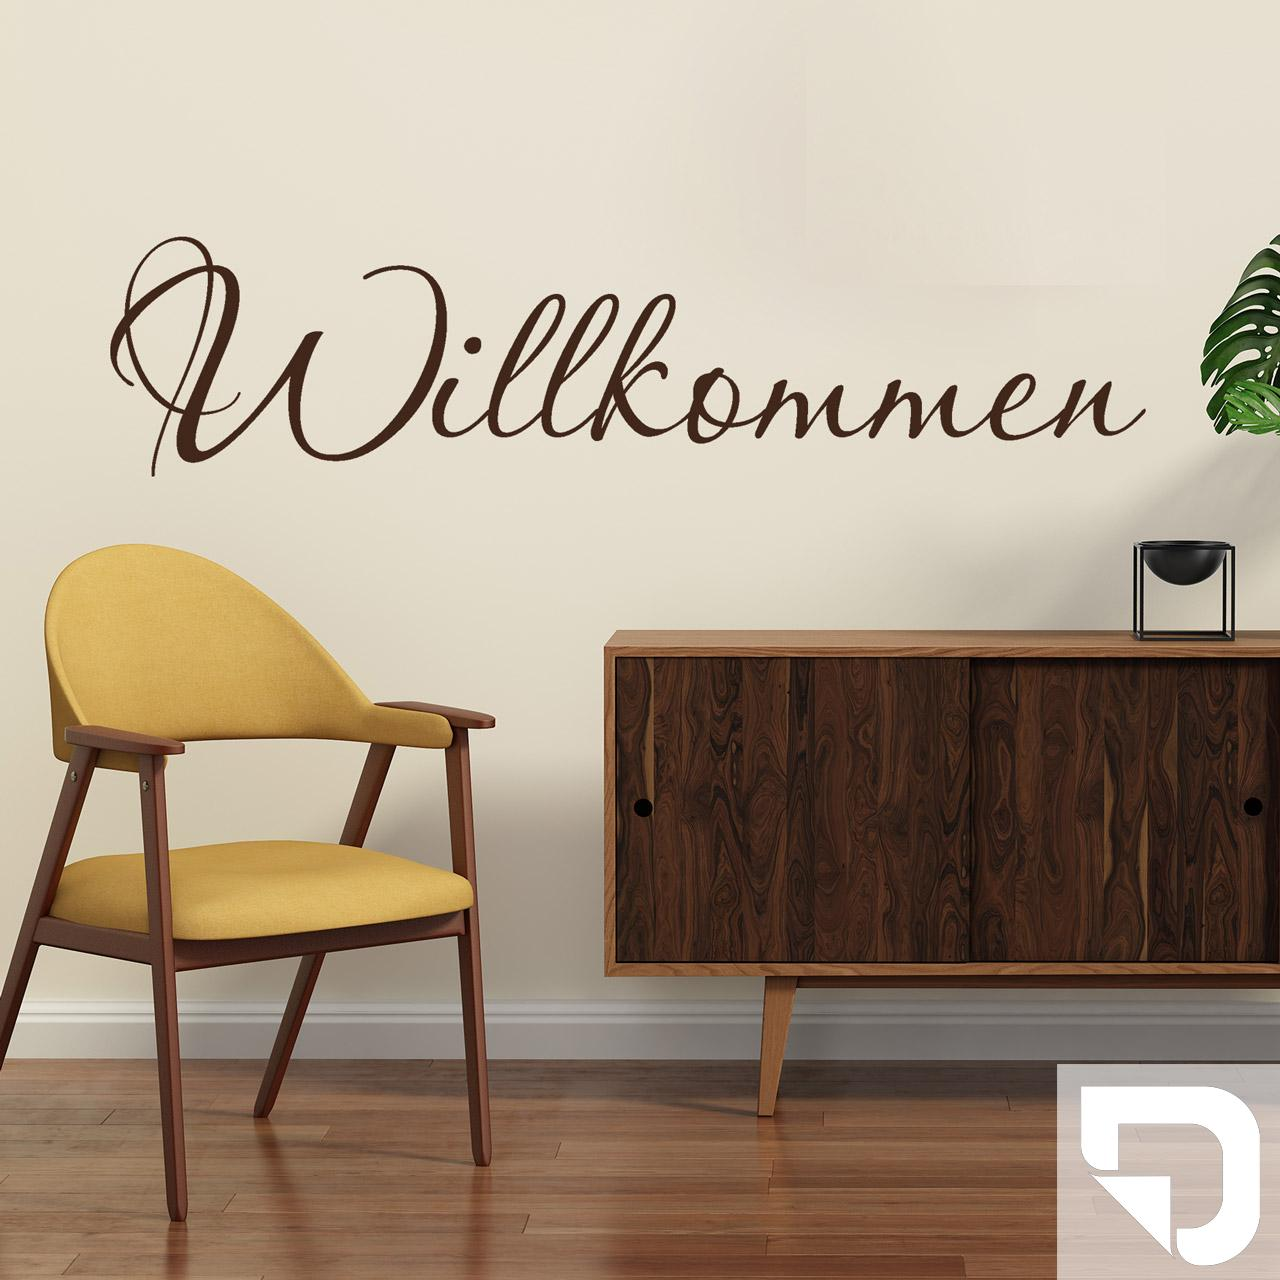 wandtattoo willkommen schriftzug als dekoration f r den flur von designscape ebay. Black Bedroom Furniture Sets. Home Design Ideas